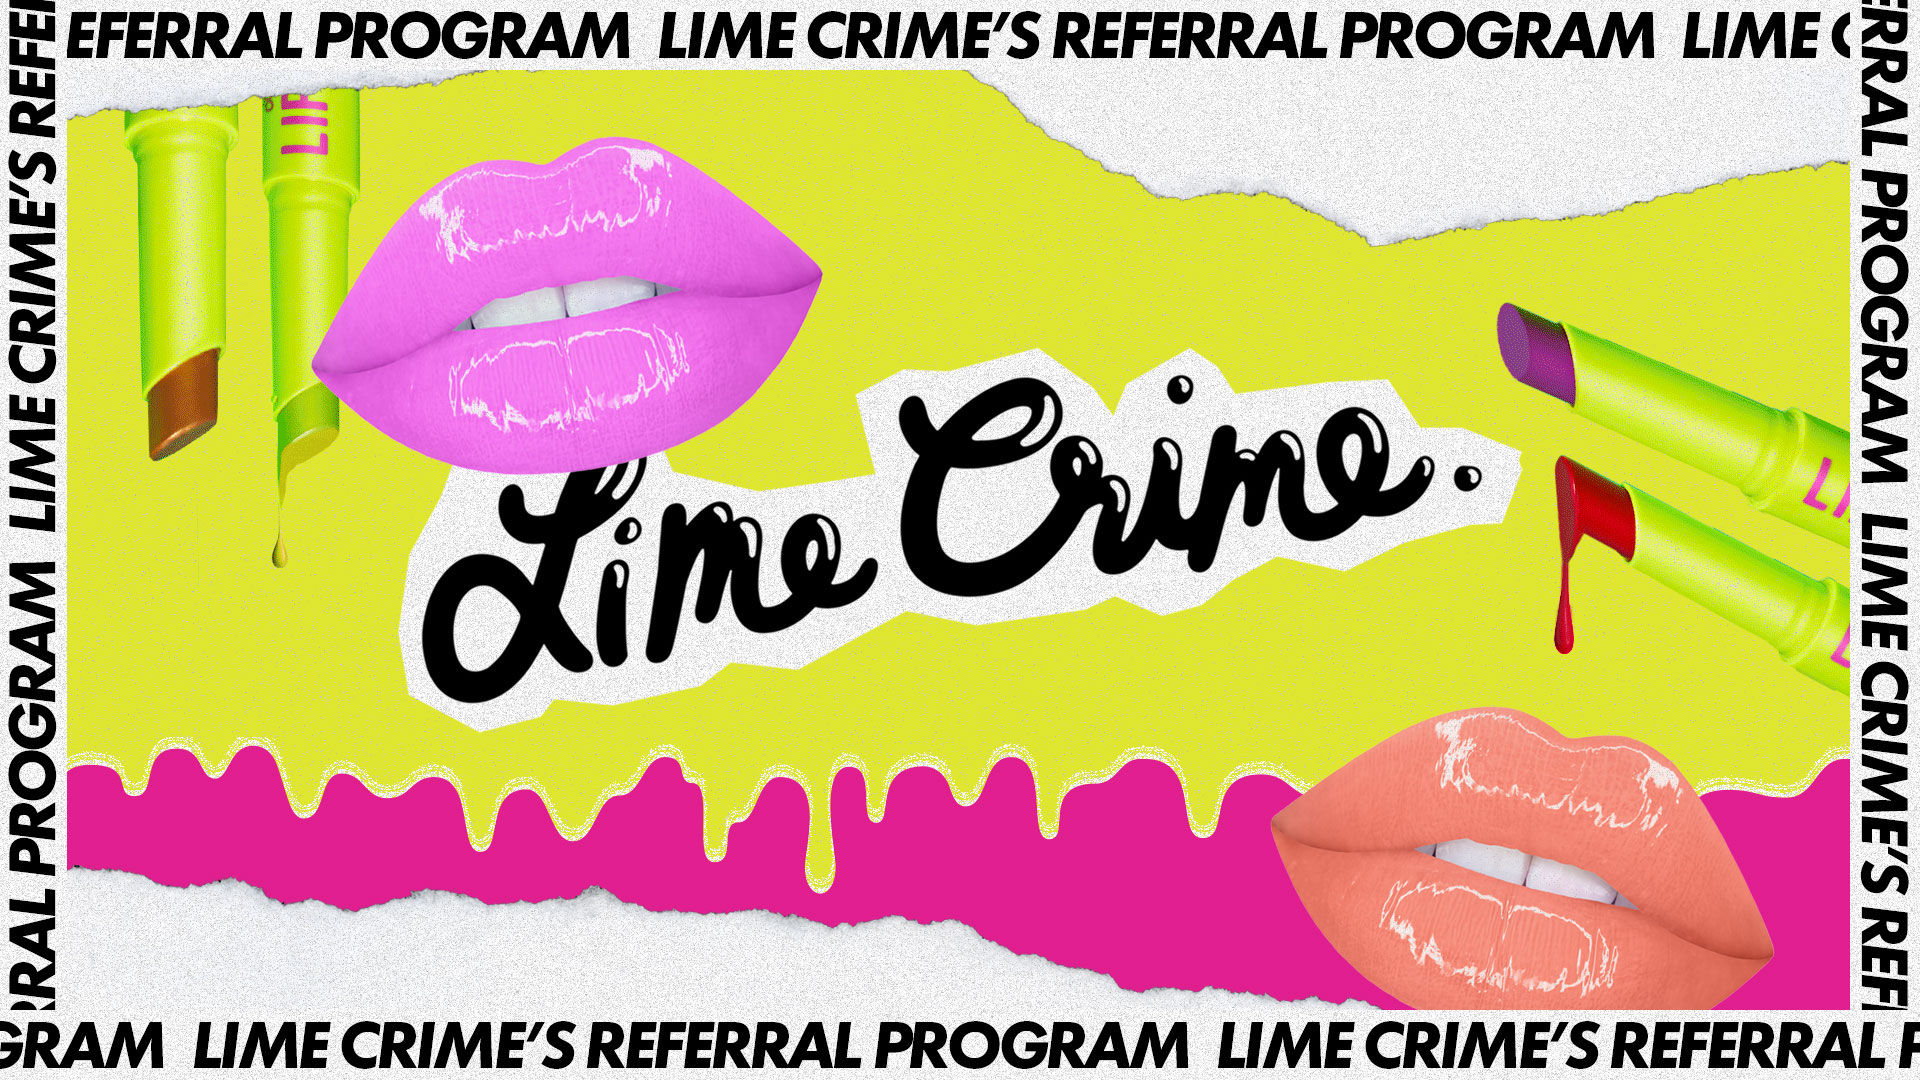 Lime Crime's referral program and what beauty brands can learn from it.